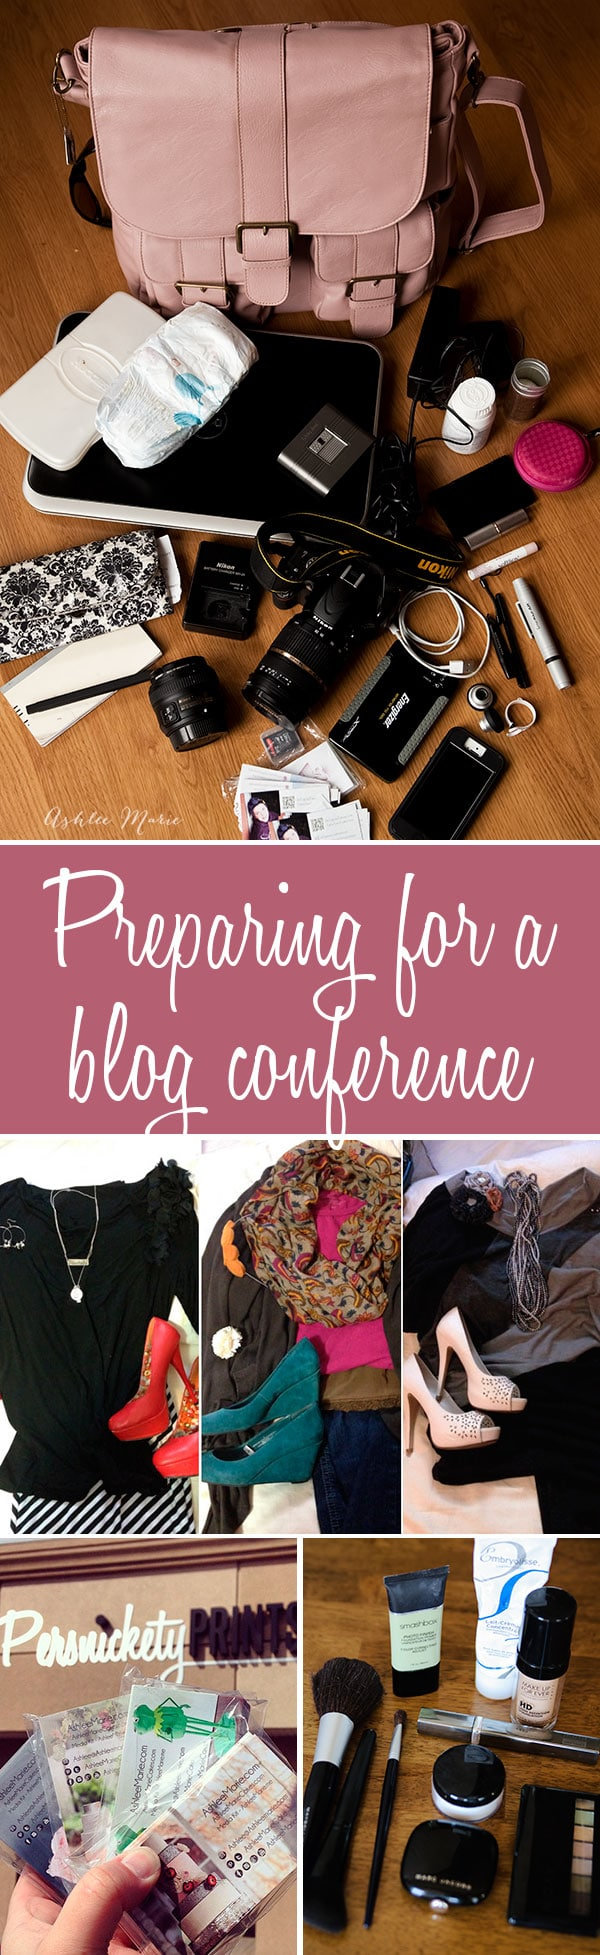 Ive attended over 20 blog conferences over the years and this is my packing list